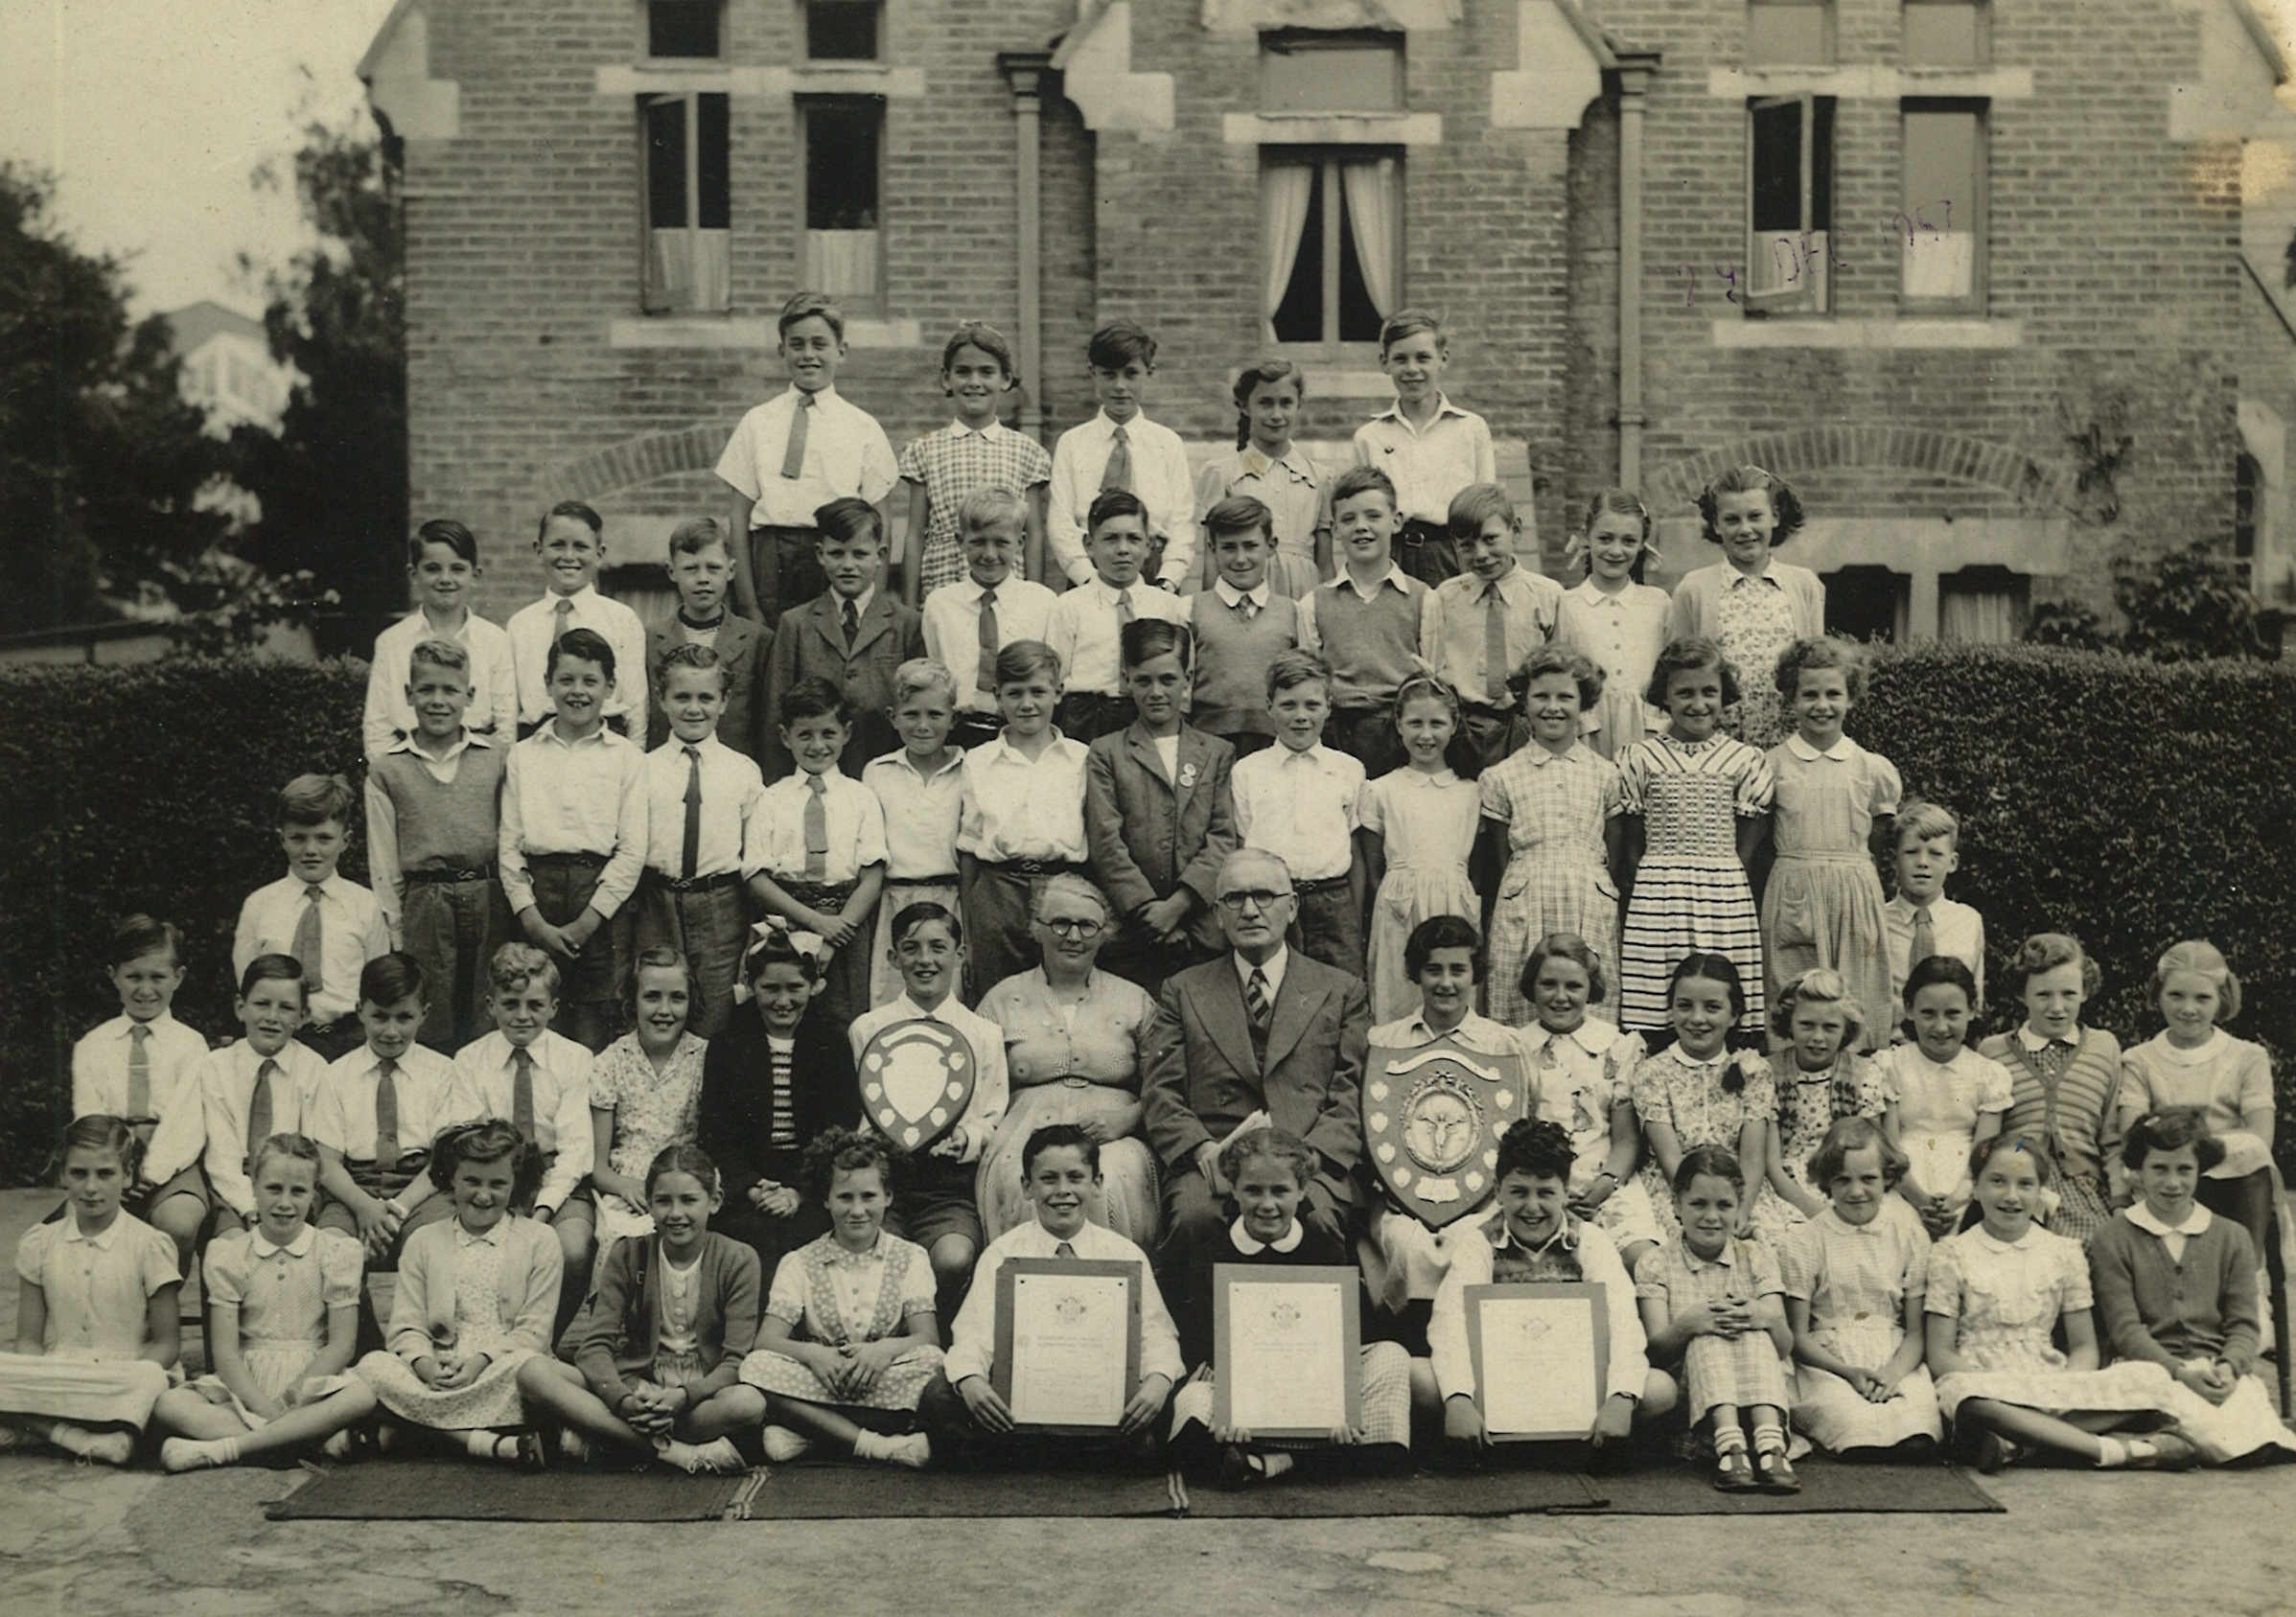 Boys and girls choirs at St Michael's primary school, West Cliff, Bournemouth, after they had major wins in the Bournemouth Music Festival in 1951/52 with headmaster George Mansfield and teacher Mrs Knight. Picture sent in by Stanley Pretty who is in